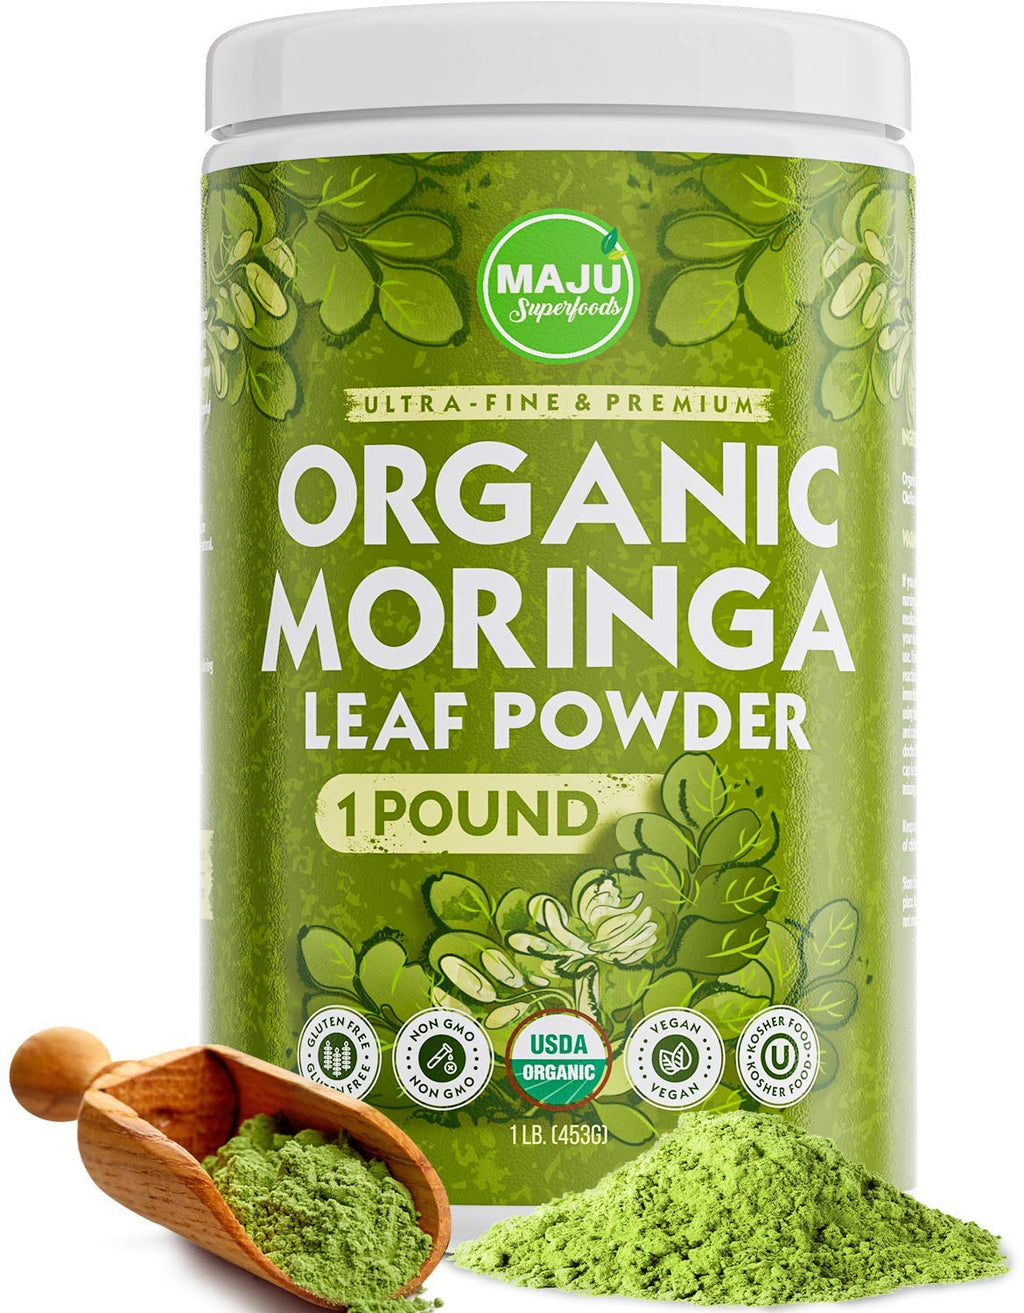 MAJU's Organic Moringa Powder (1 Pound) - Maju Superfoods